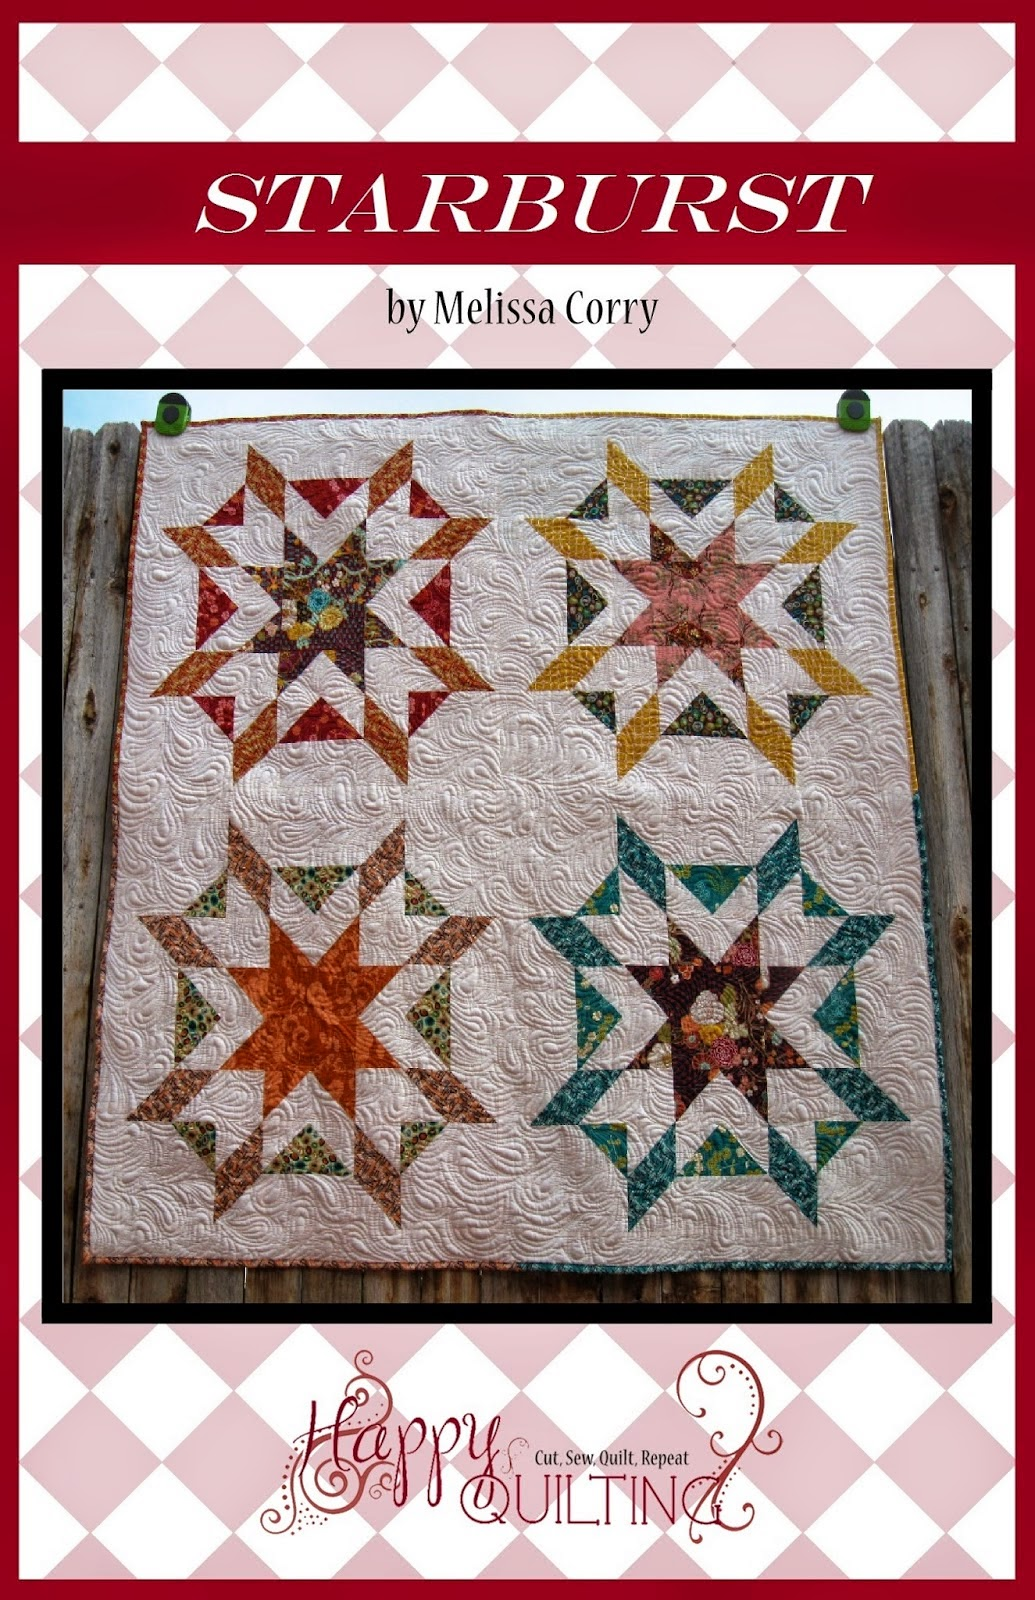 http://www.happyquiltingmelissa.com/p/my-patterns.html